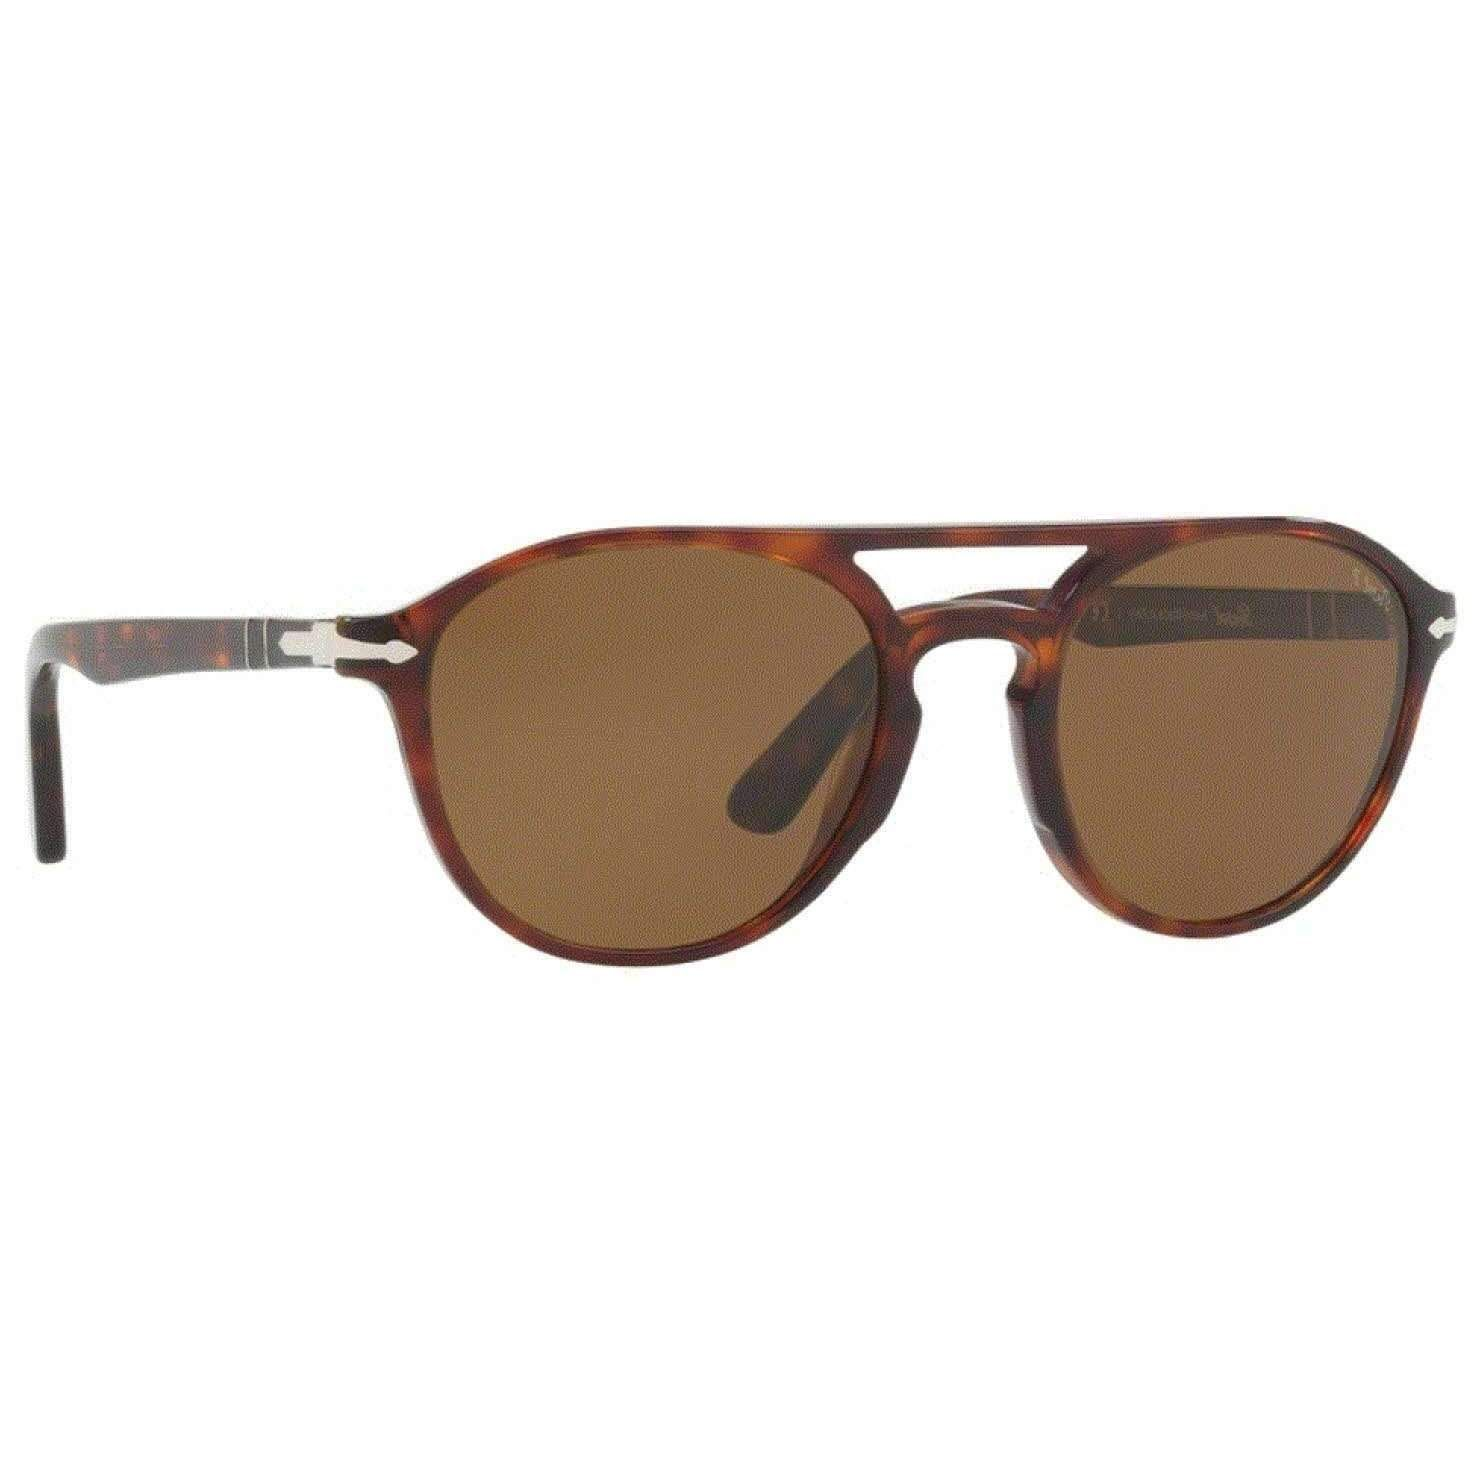 88d4acd3414 Persol 0PO3170S 901557 52 HAVANA POLARIZED BROWN GALLERIA Phantos Sunglasses   160